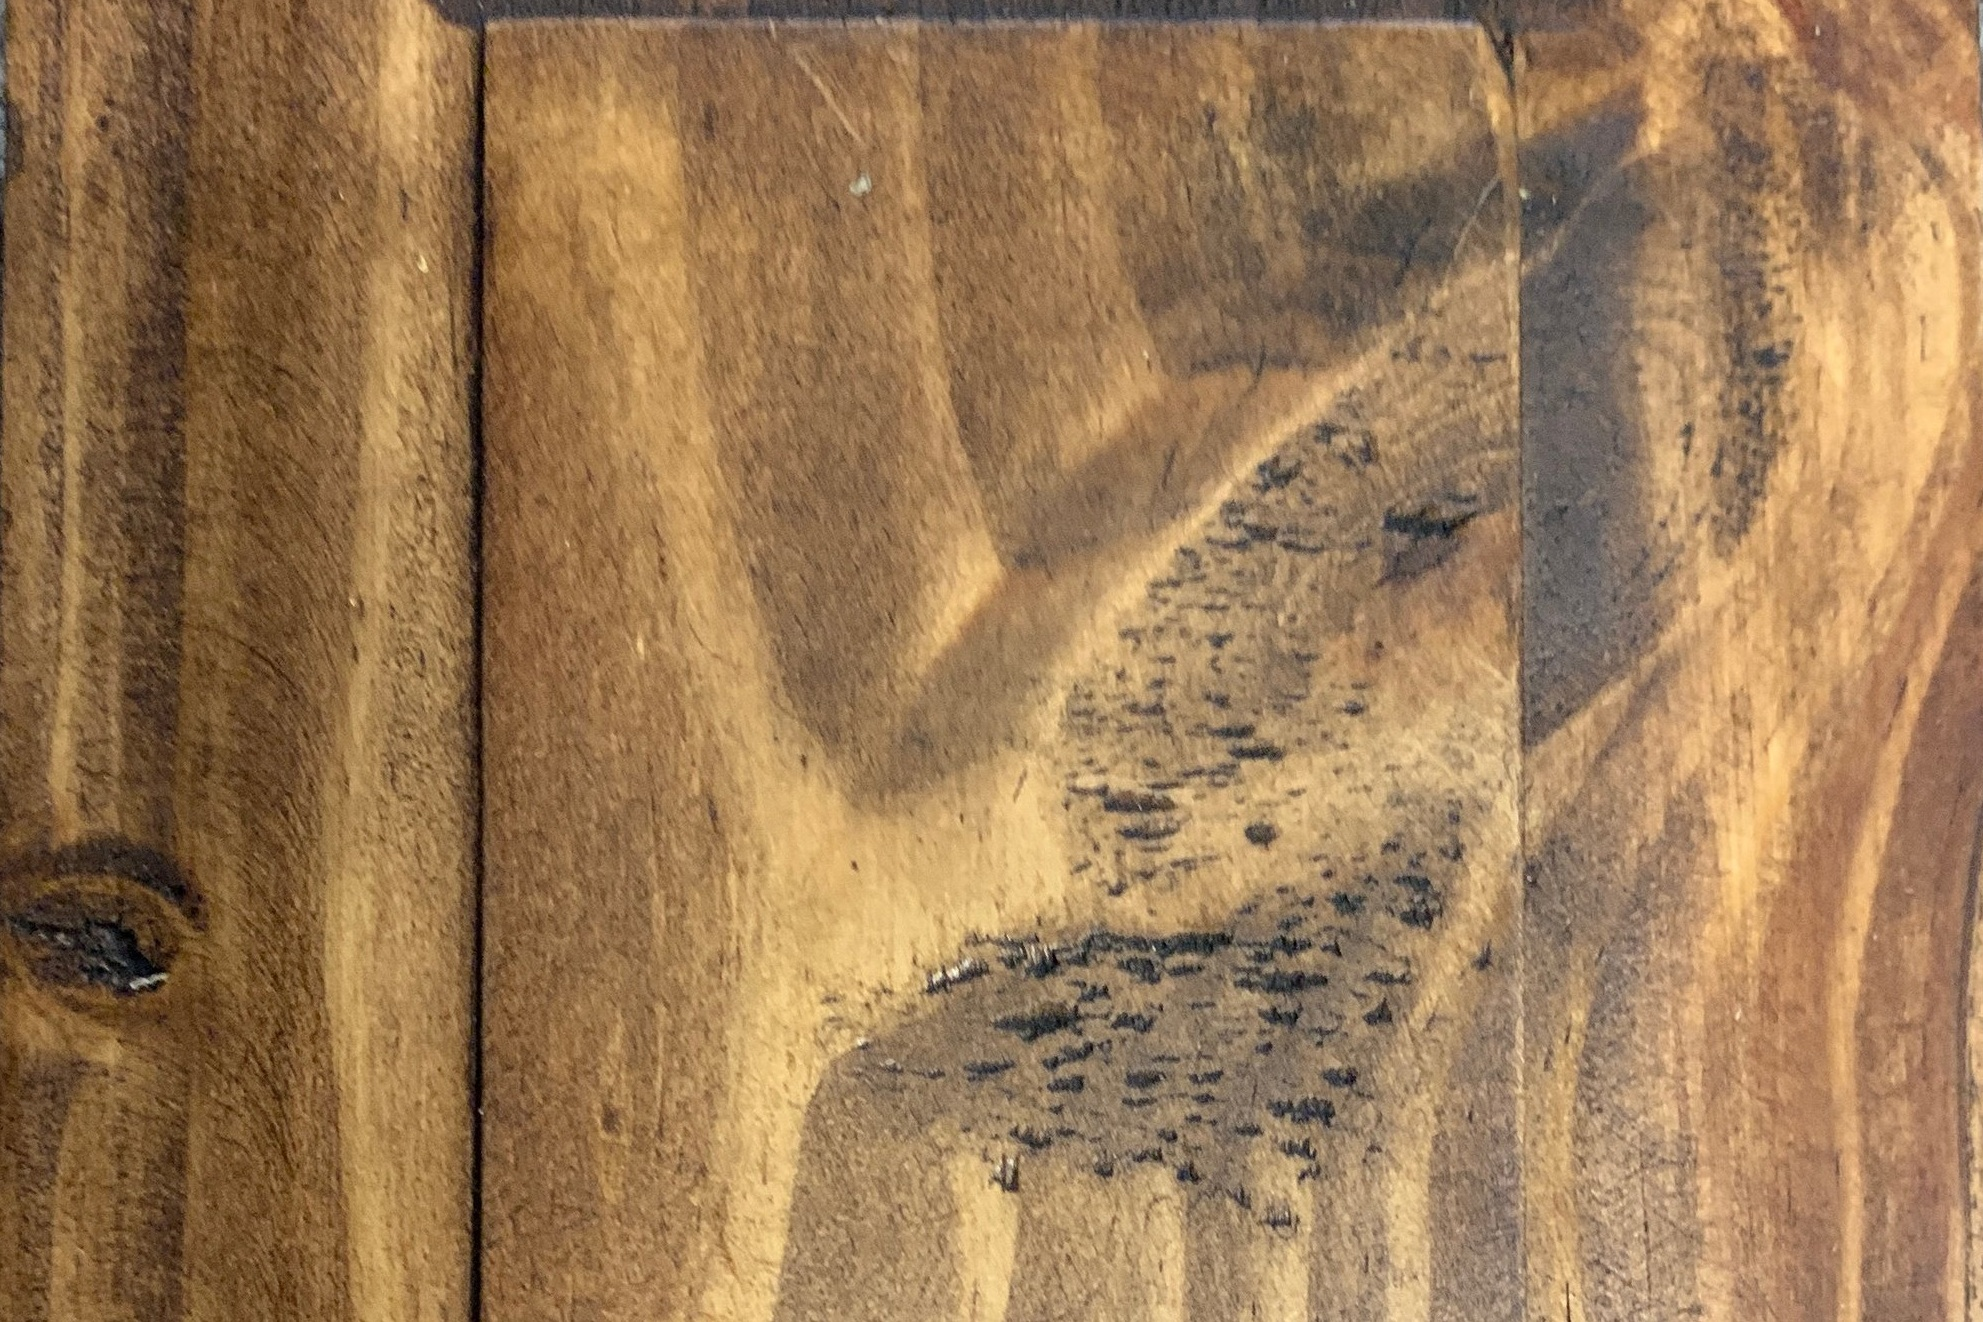 Medium Dark Stain